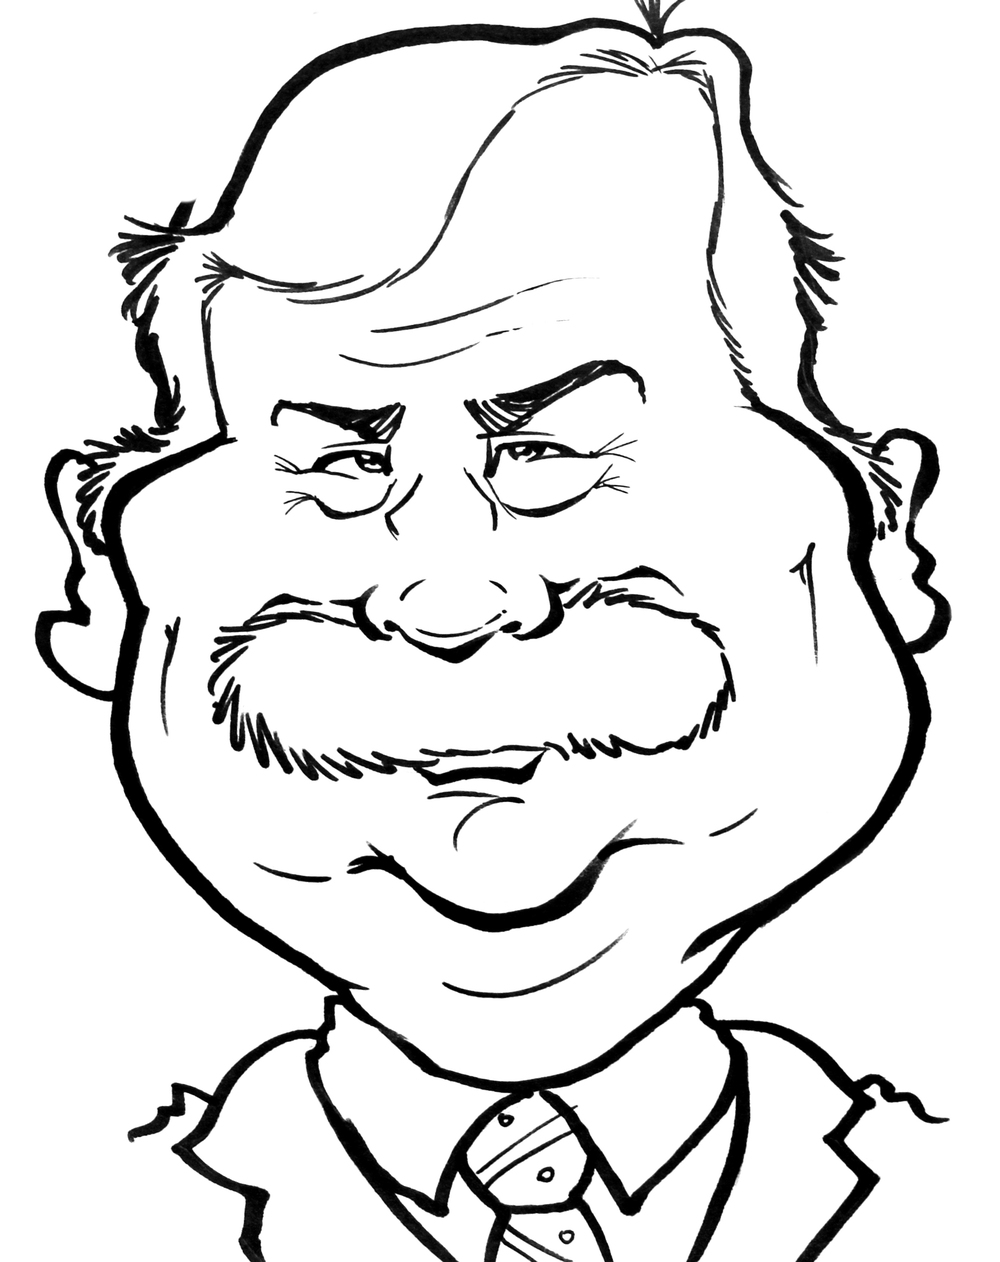 Traditional Hand-Drawn Caricature Sample 16